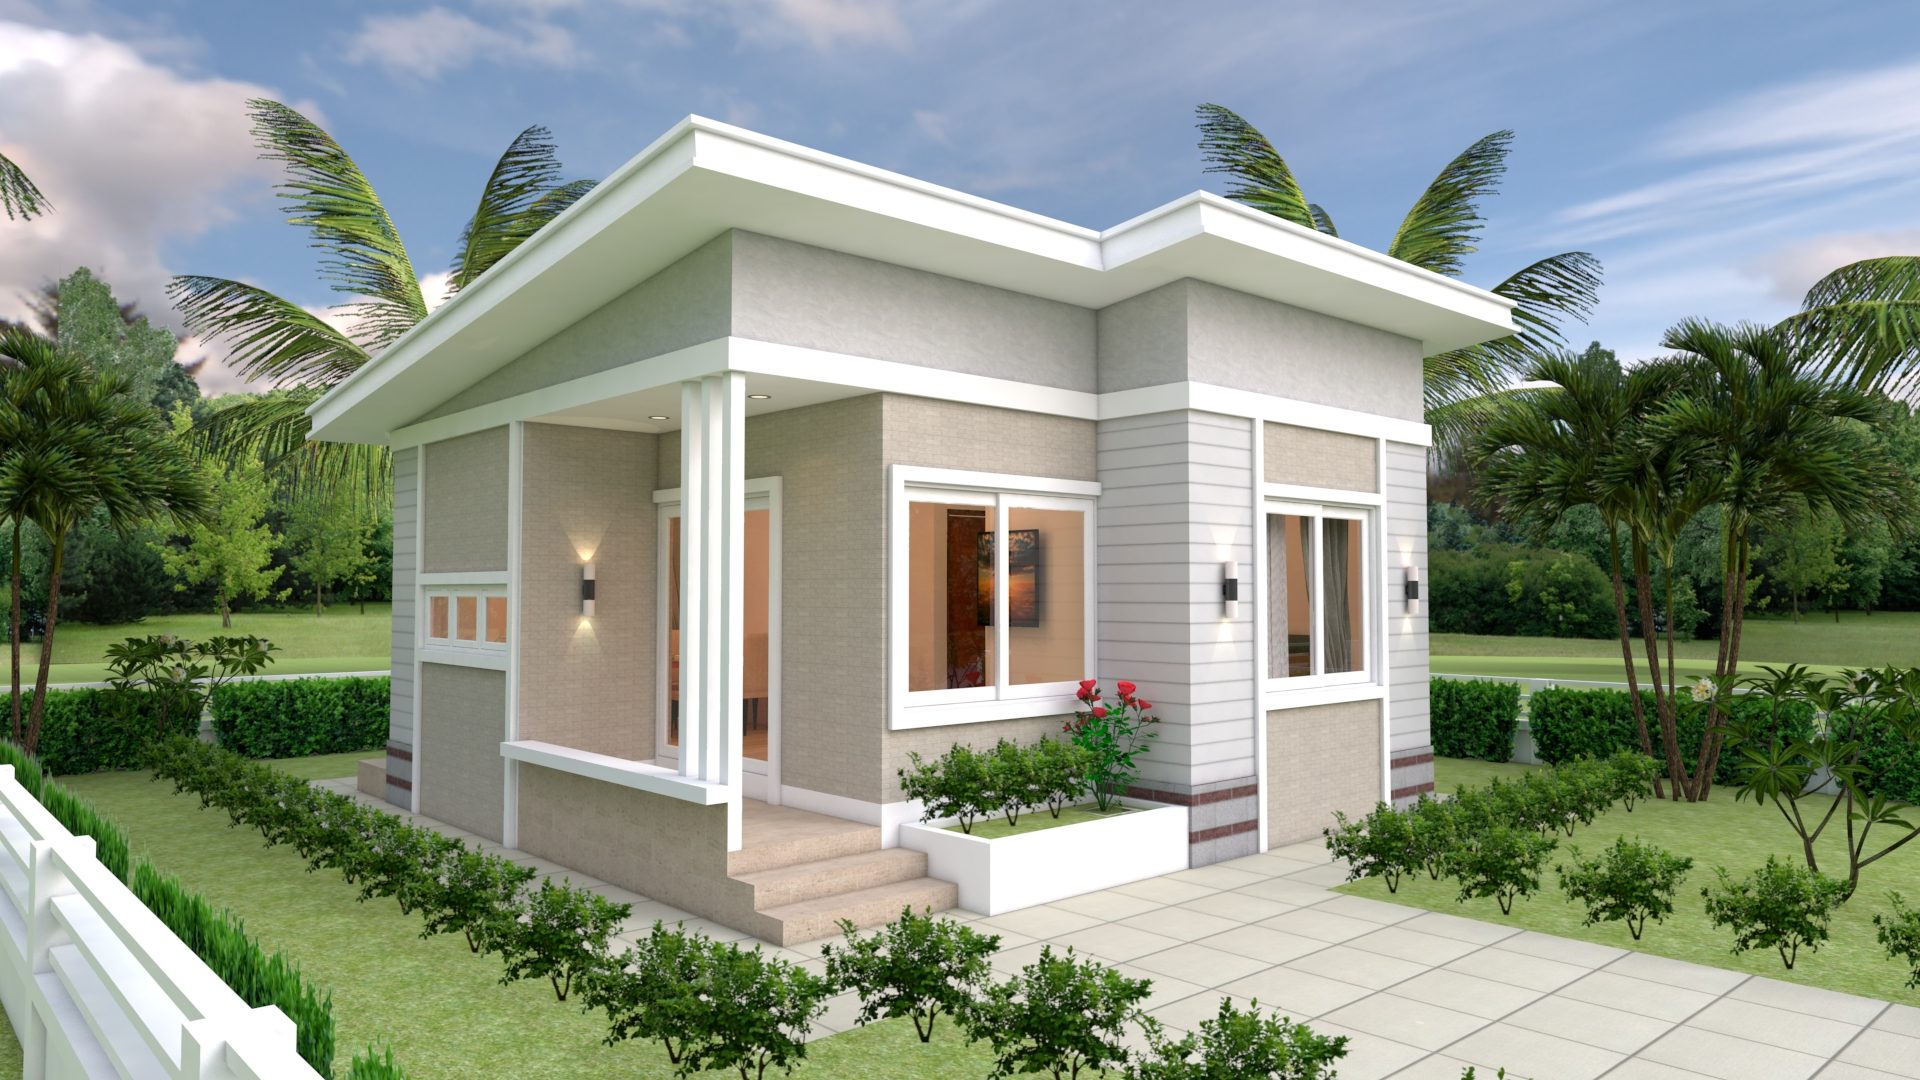 House Design Plans 7x7 with 2 Bedrooms Full Plans ...